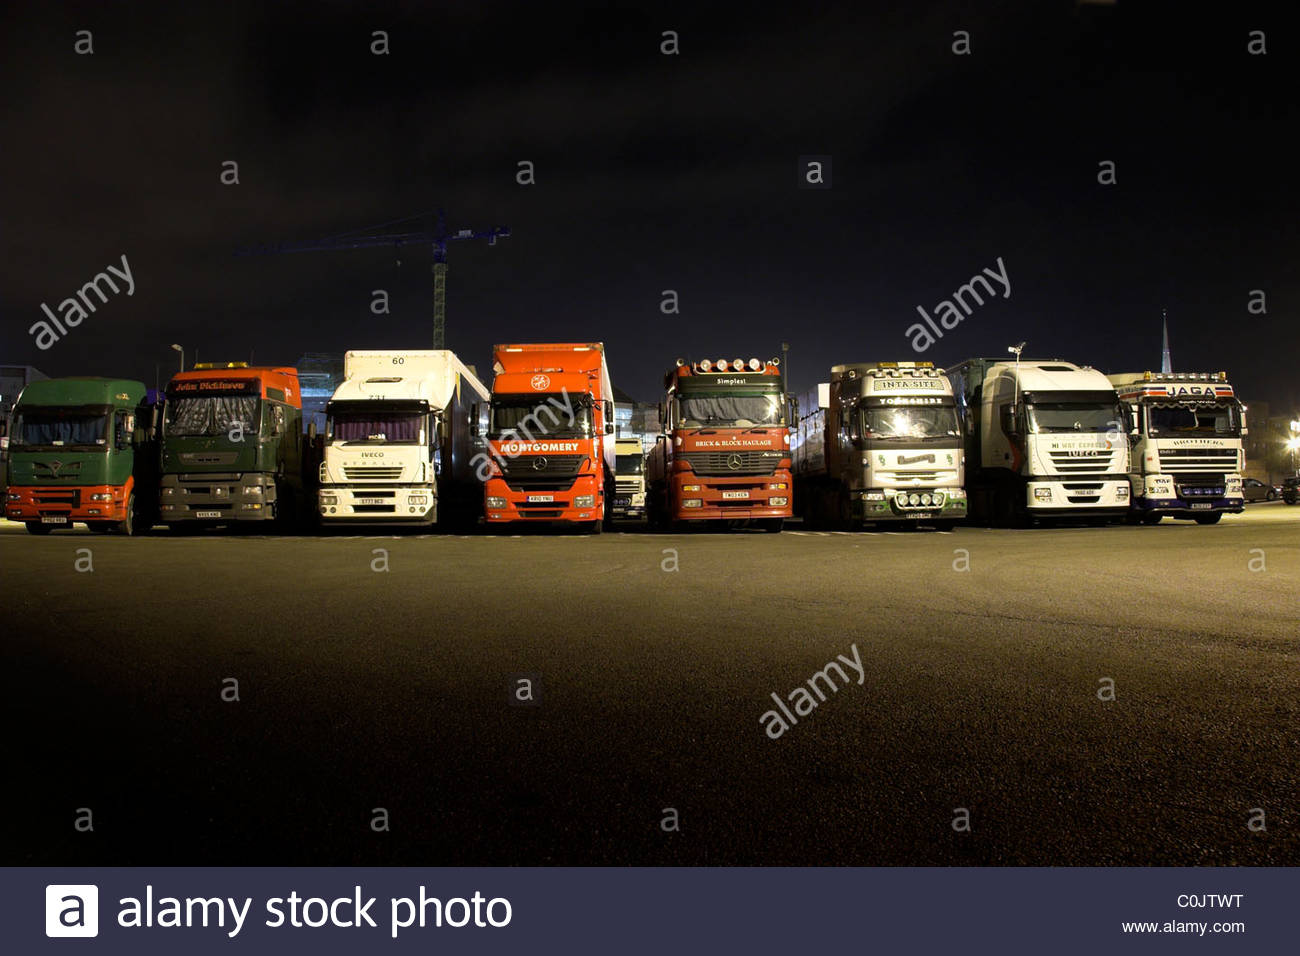 long-distance-lorry-drivers-sleeping-in-their-cabs-in-the-lorry-park-C0JTWT.jpg